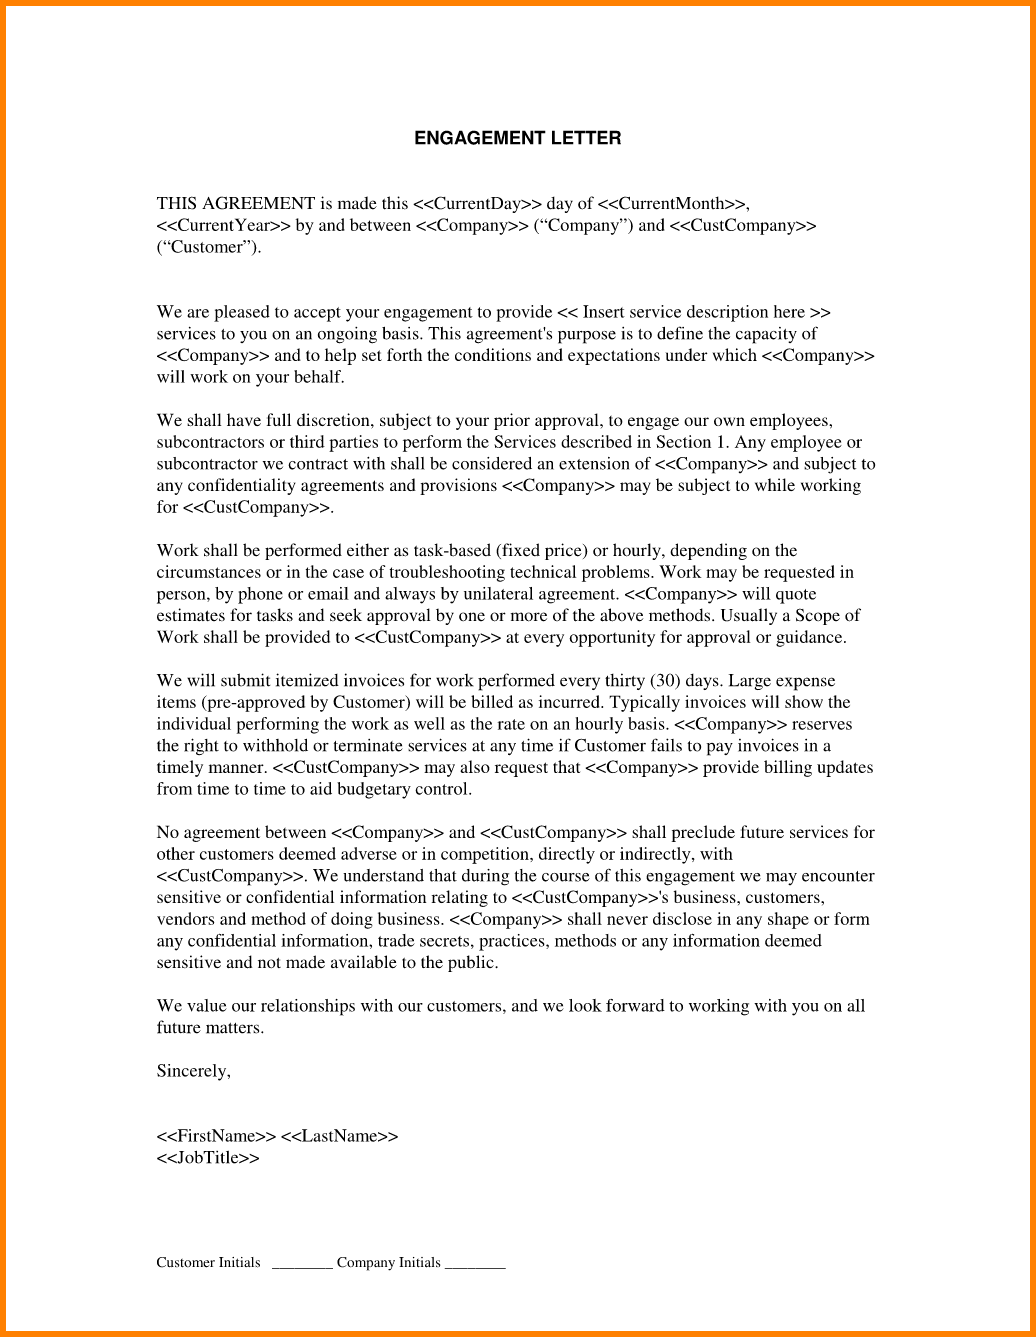 Contract Proposal Letter Engagementletterwithservicesagreement